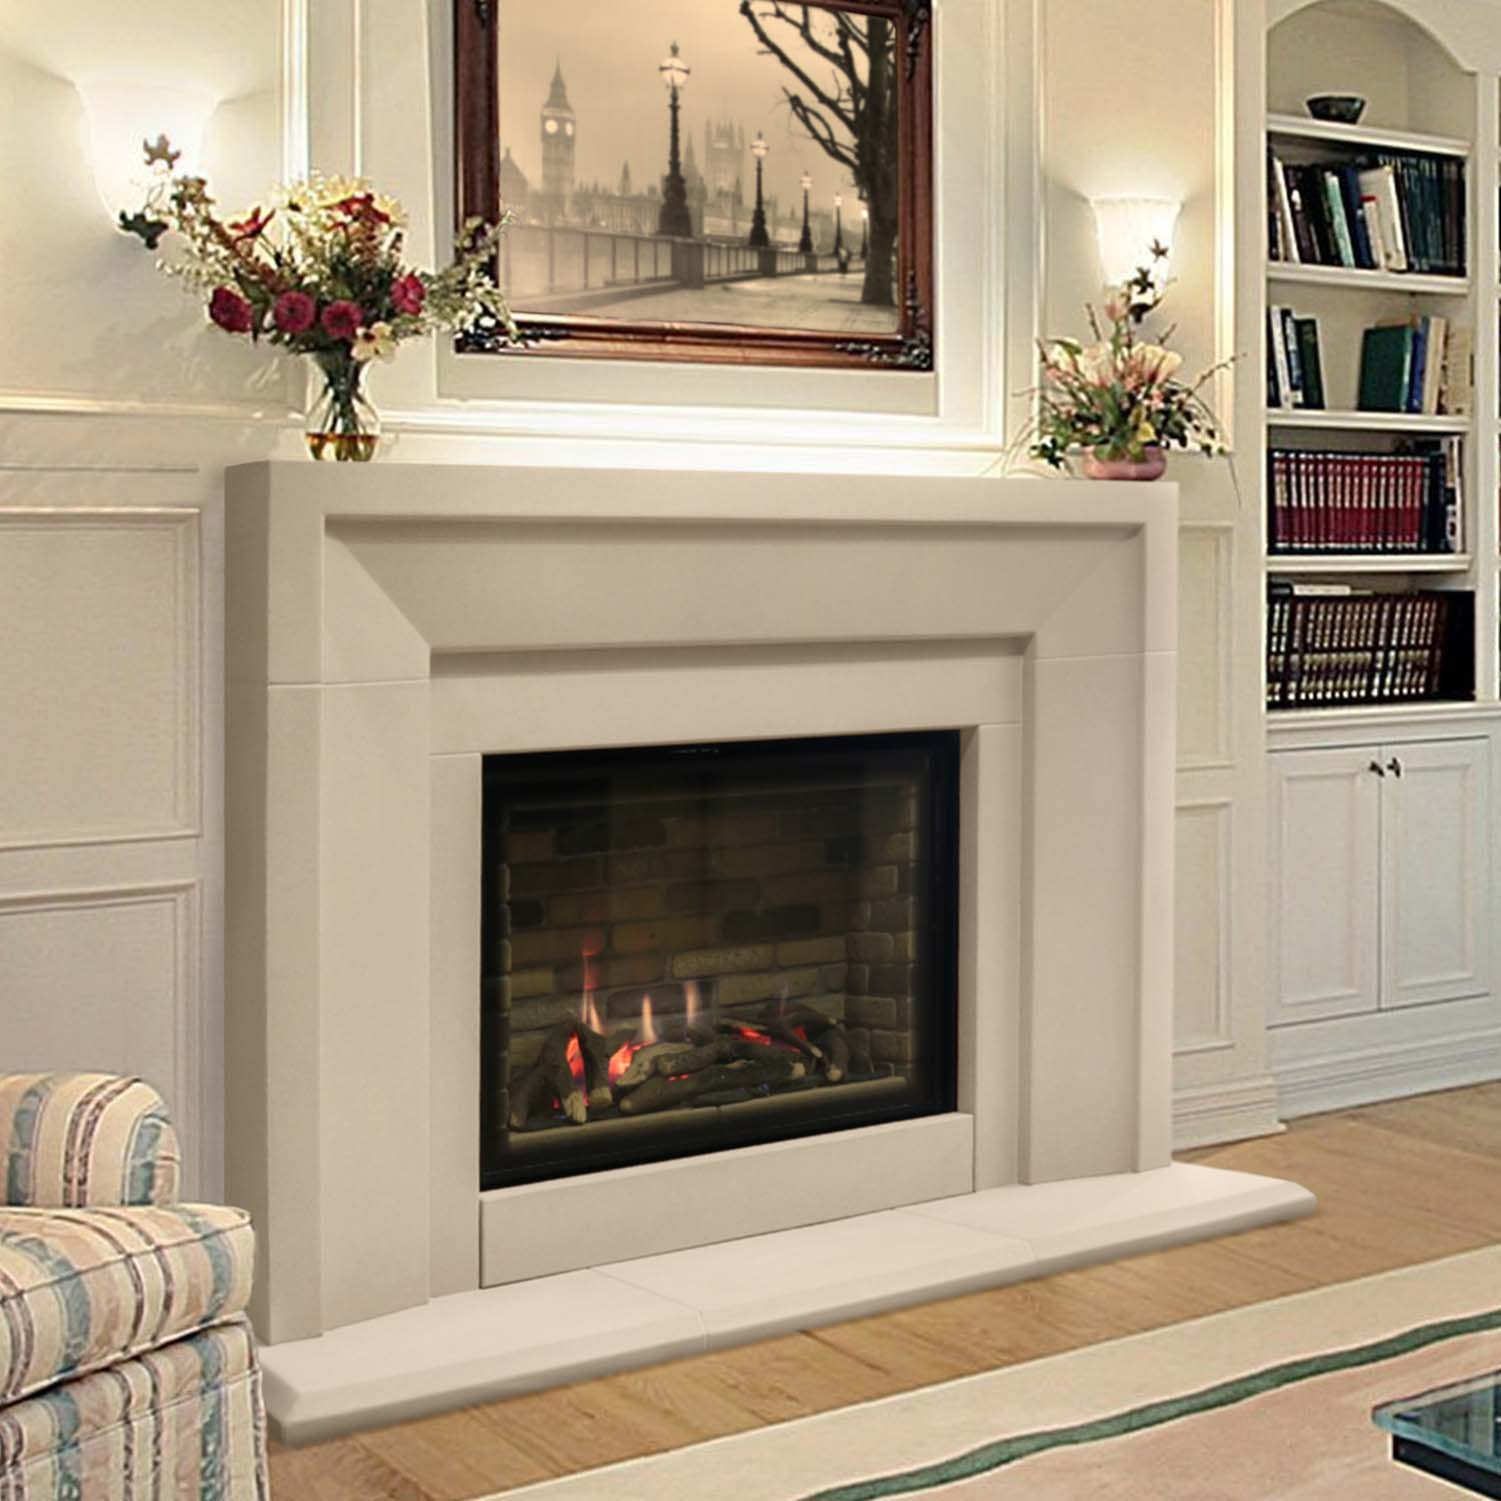 Fireplaces with large screen fires